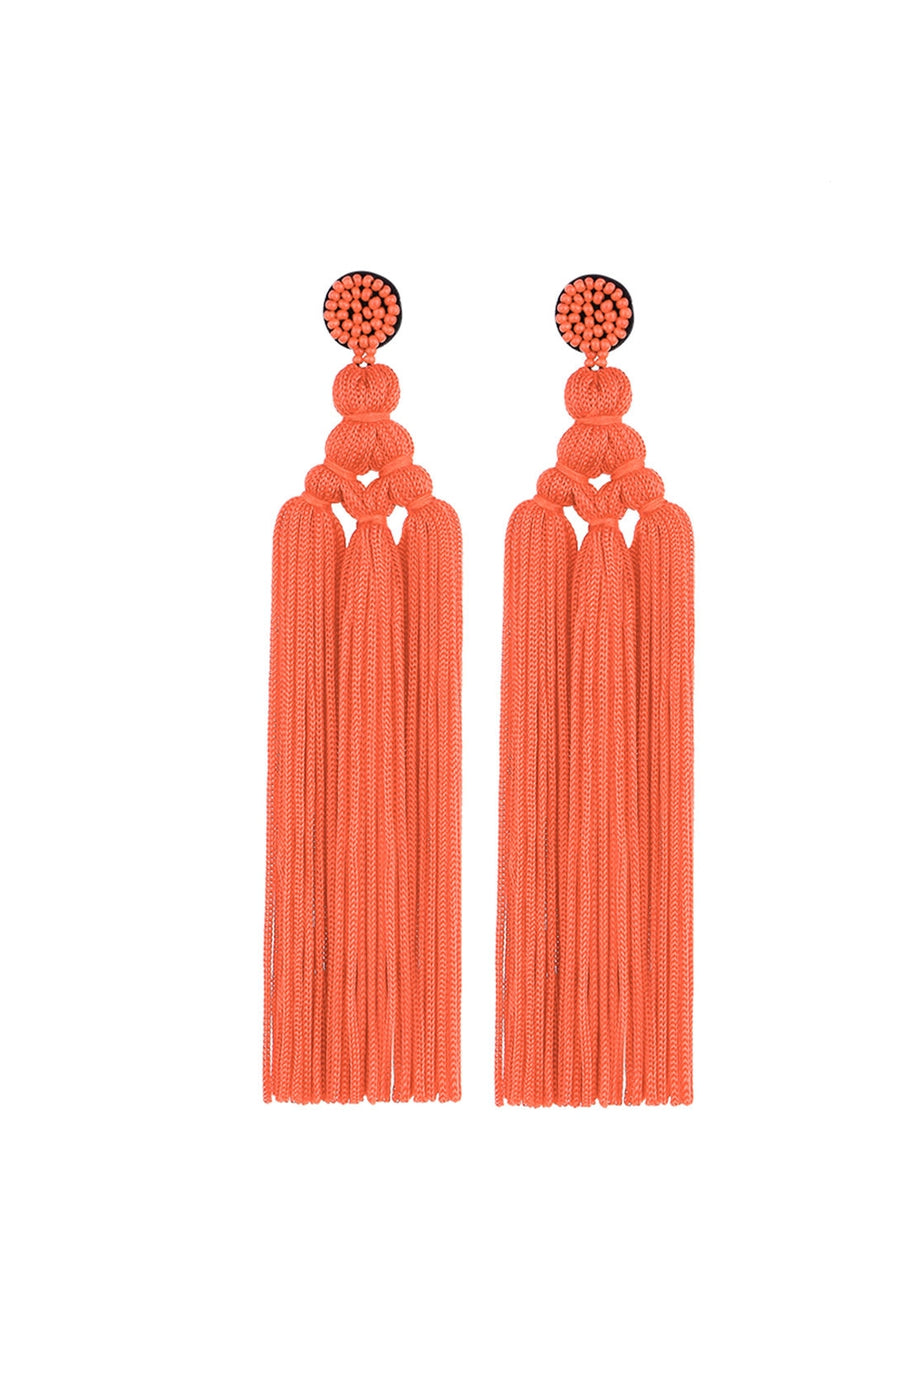 3 Knot Long Thread Tassel Pierced Earrings